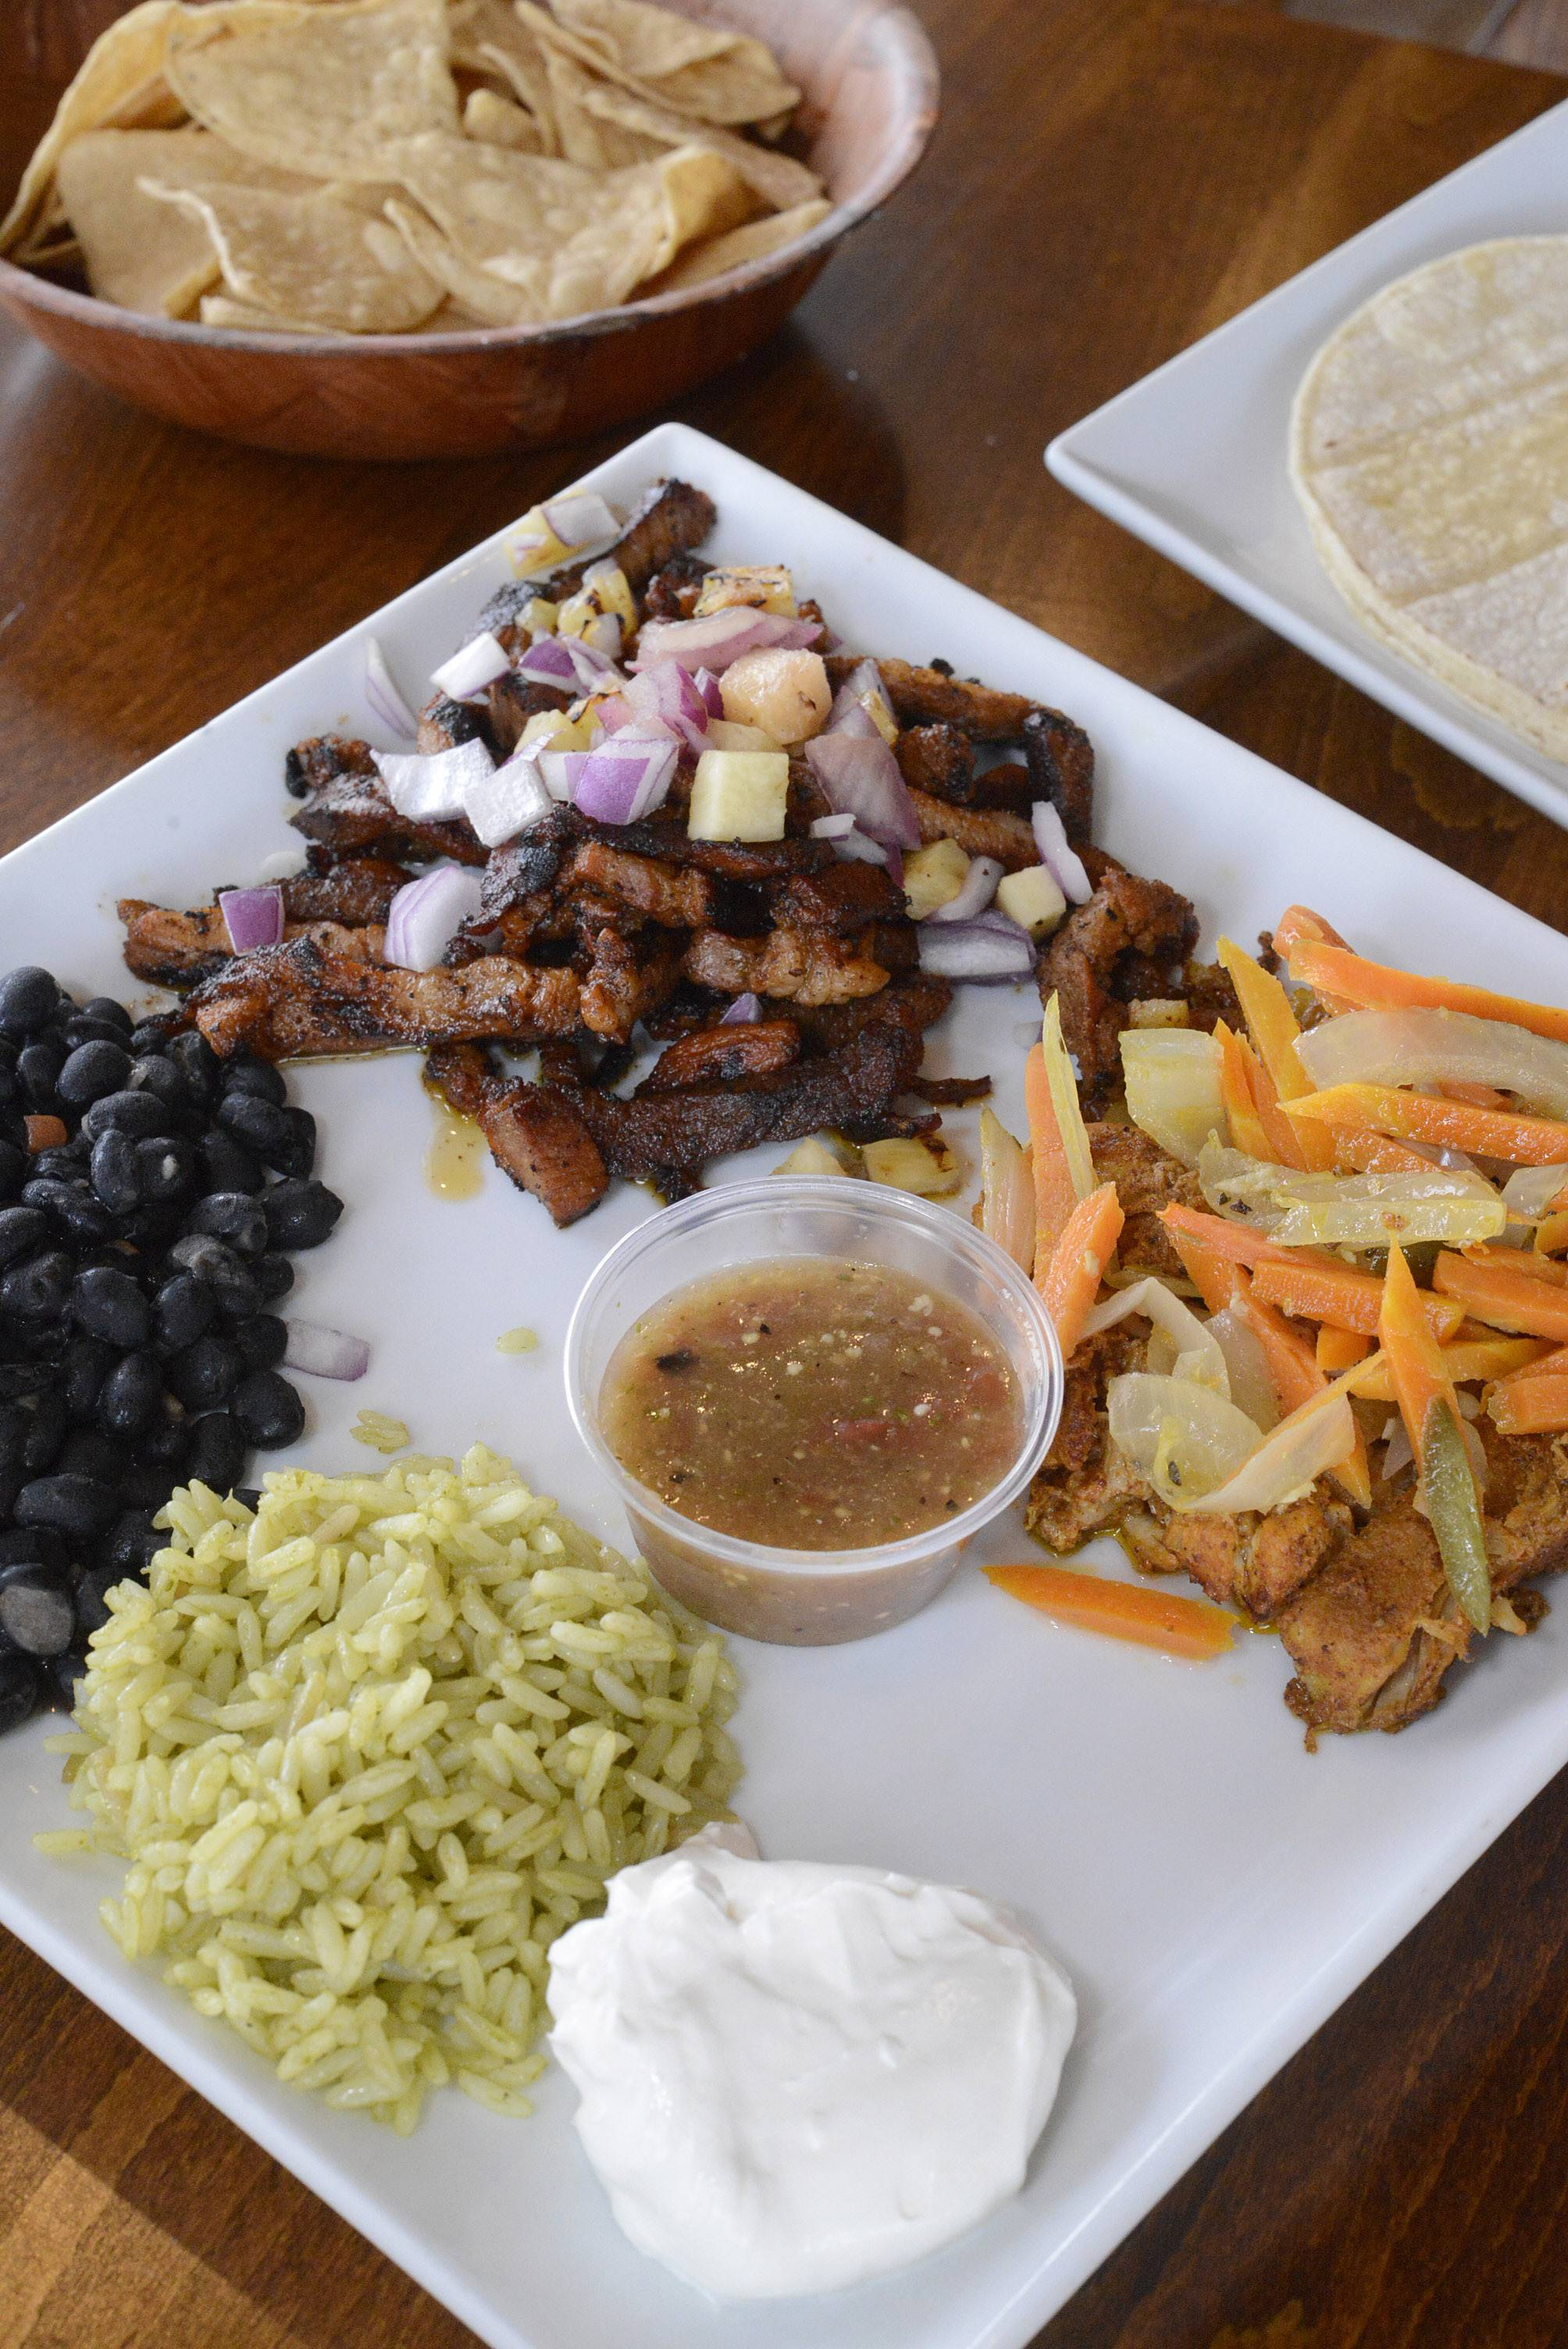 Cactus Zone's pork platter pairs pork tenderloin topped with pineapple salsa, right, with slow-cooked pork called cochinita pibil.